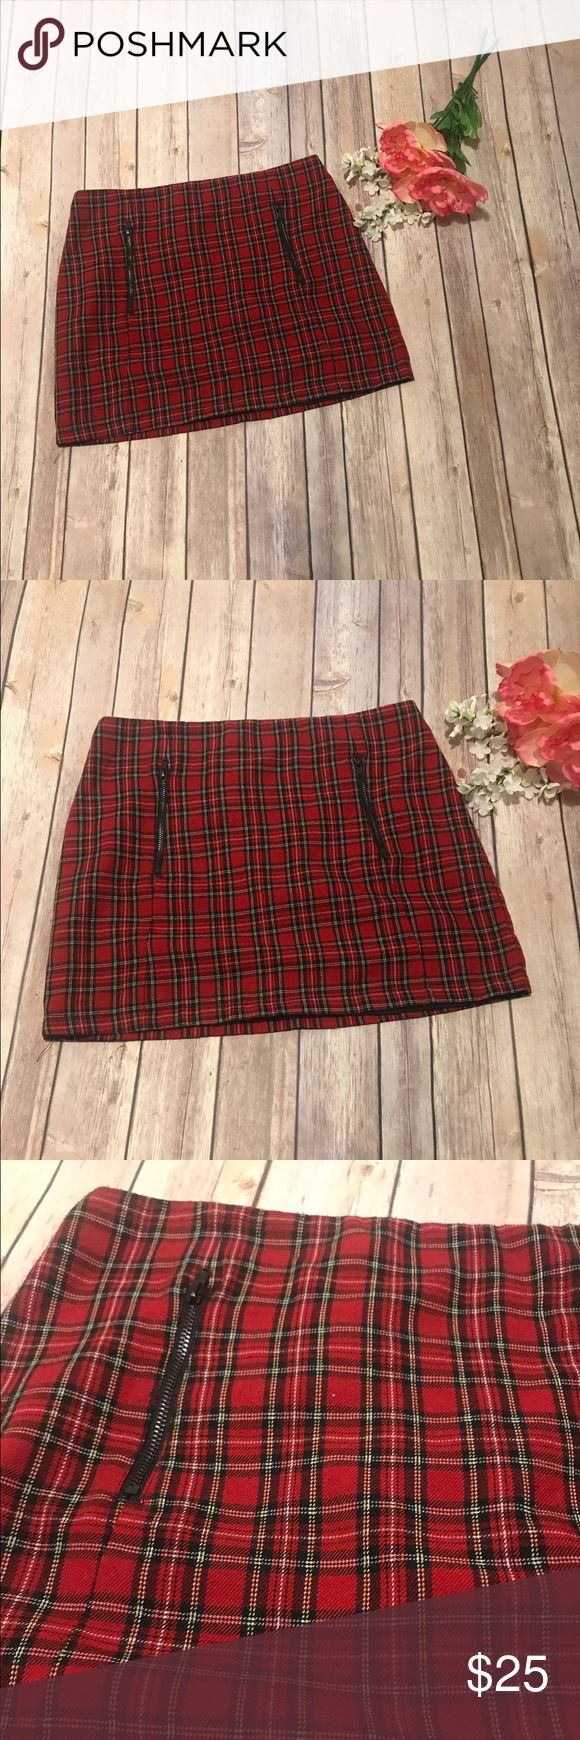 Topshop Classic Plaid Skirt A Classic! This plaid skirt could be worn so many ways, including schoolgirl Halloween outfit costume! Size US 6 Topshop Skirts Mini